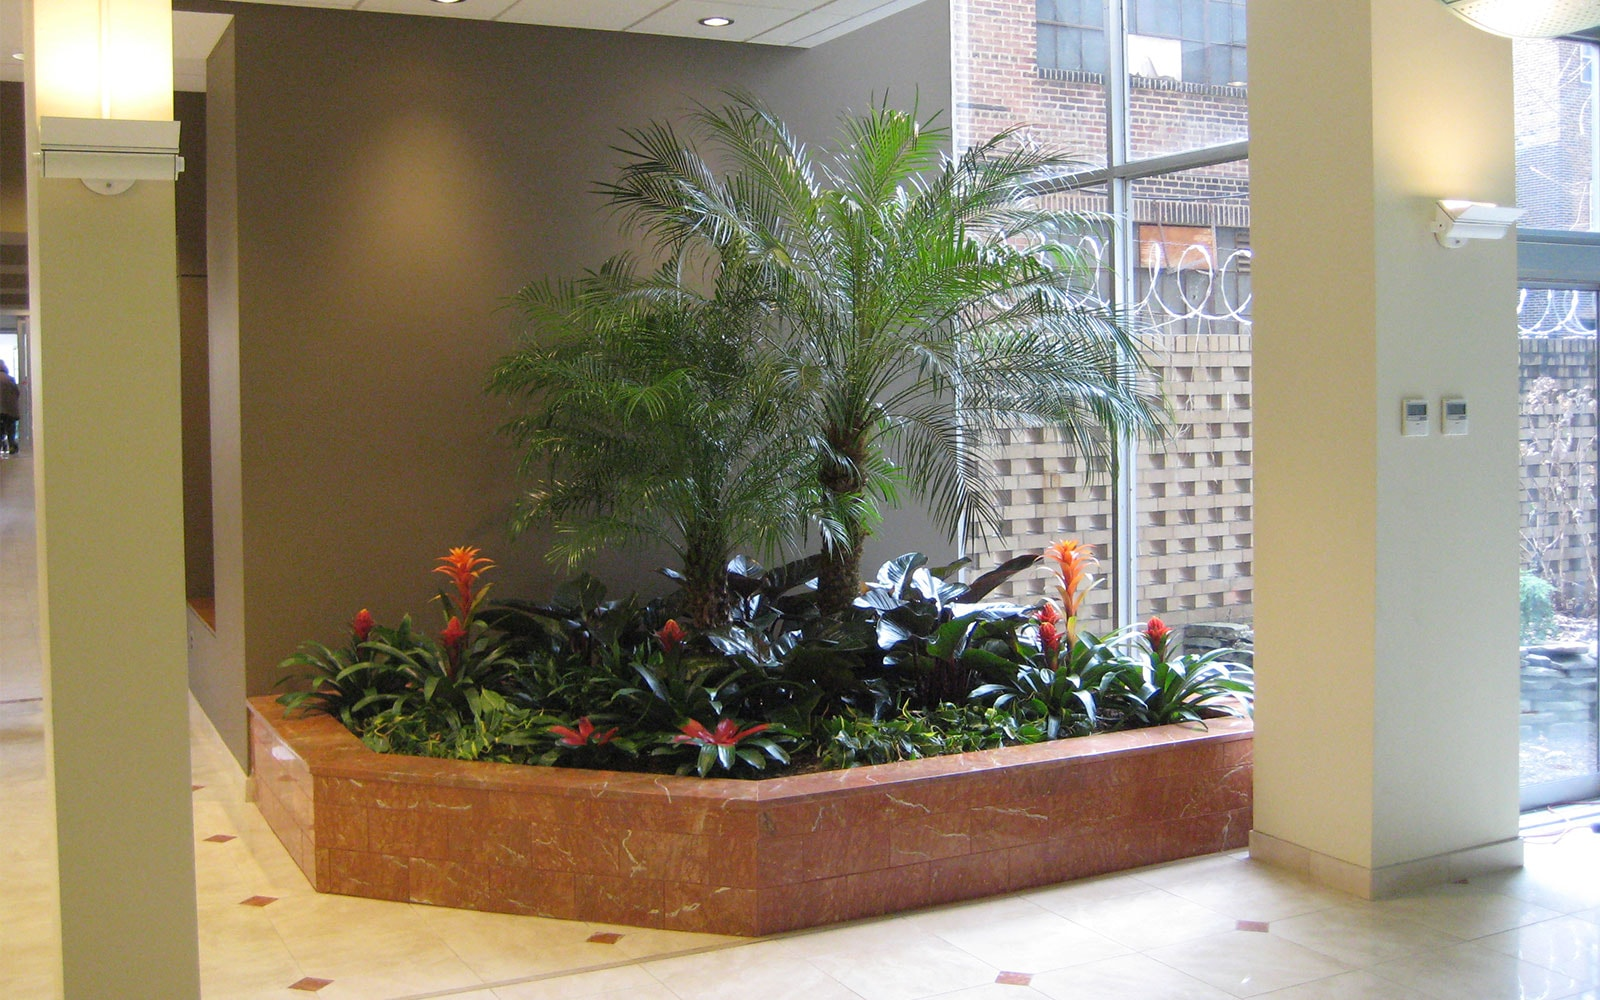 Stenton Institutional Painting - Clemens William Penn Lobby Entry Greenery